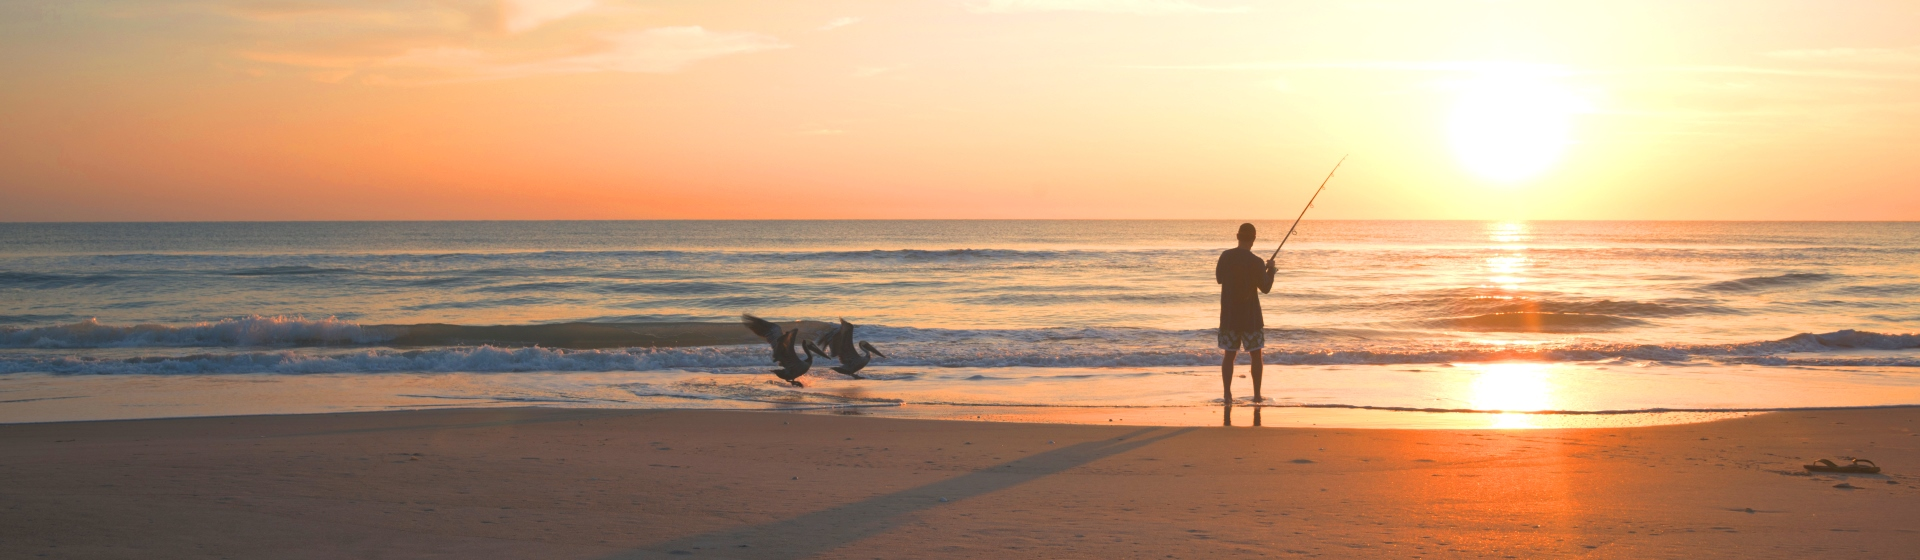 Man fishing on a Florida beach at sunset with two pelicans.